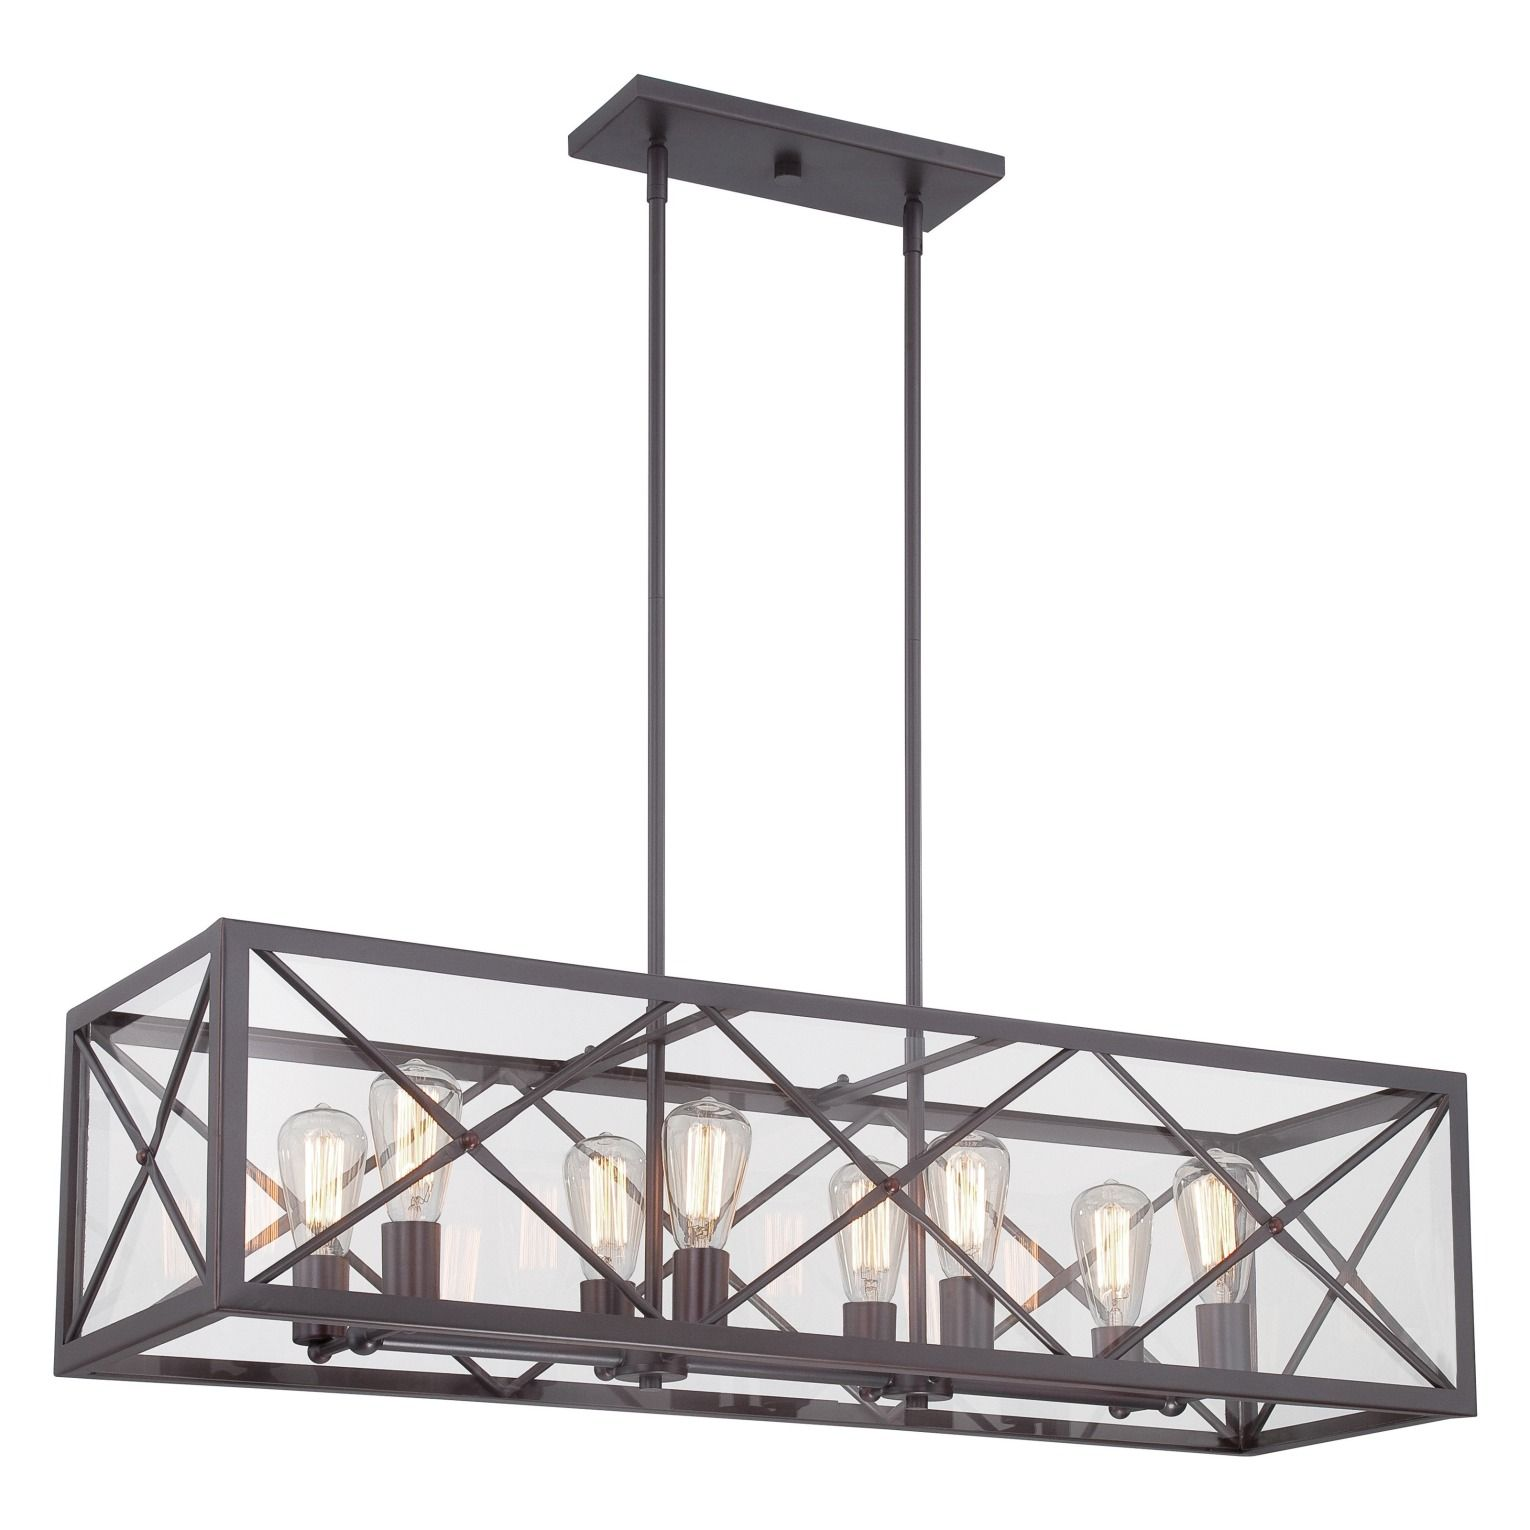 eight side by side lights and a box frame design make this linear eight side by side lights and a box frame design make this linear chandelier